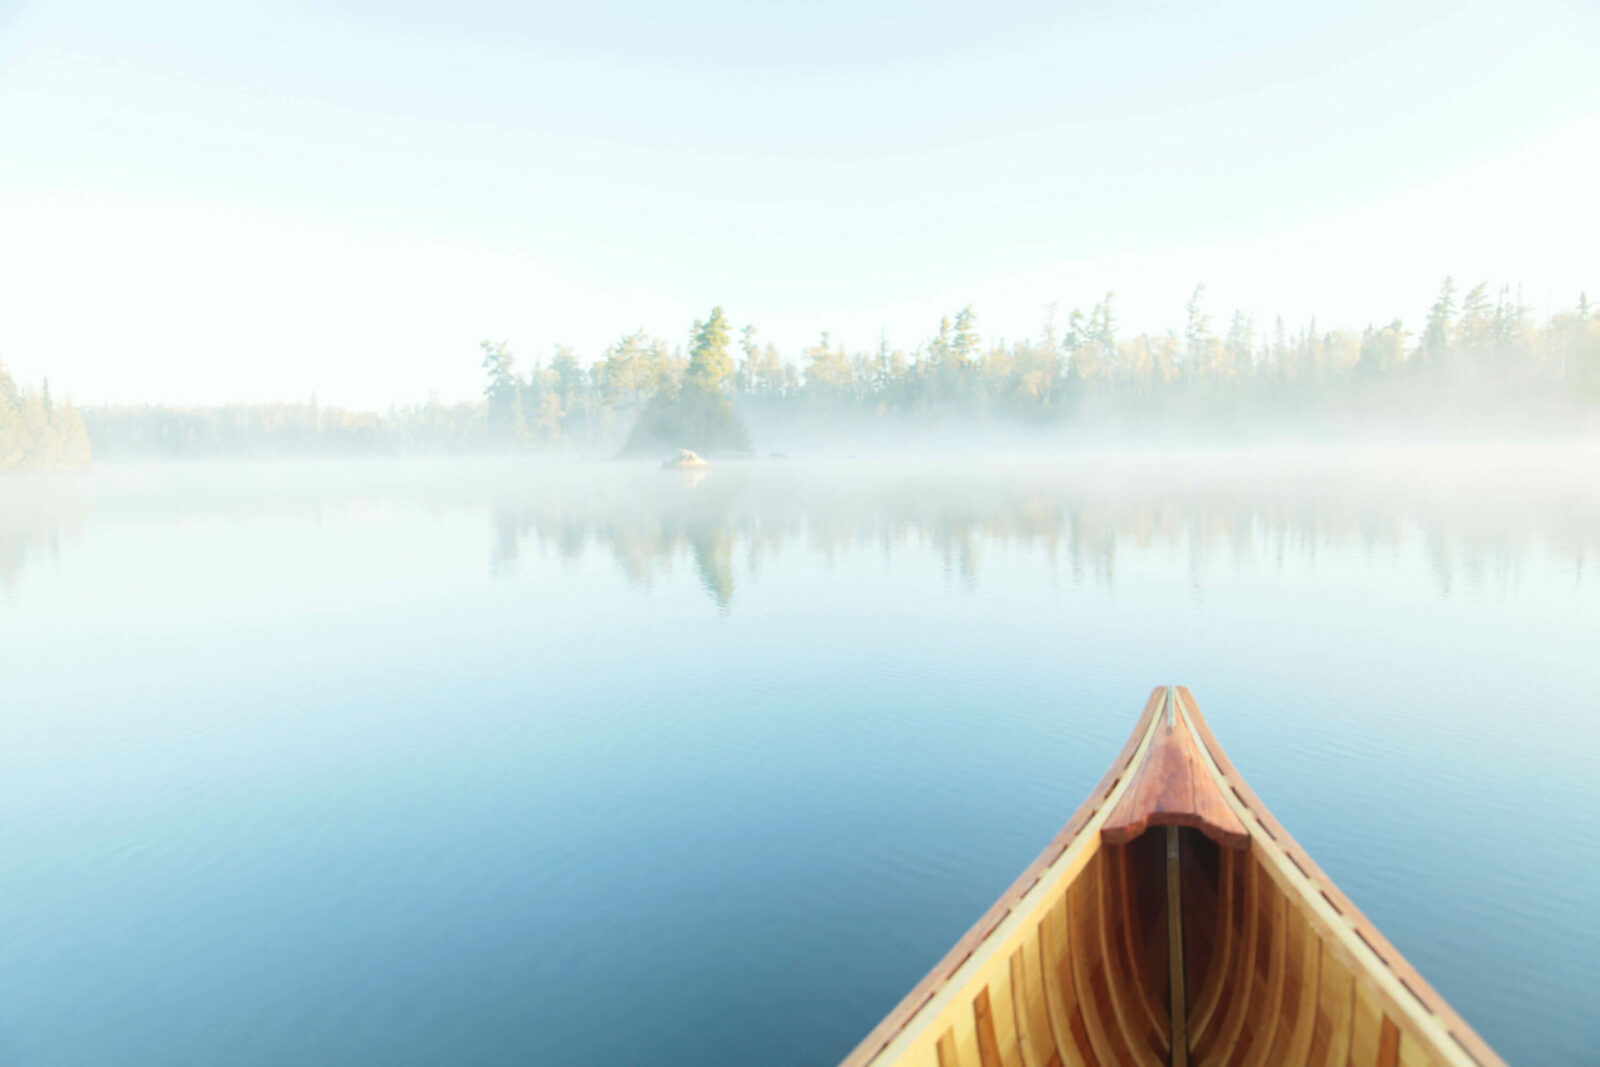 Canoe in water with fog on top of the water